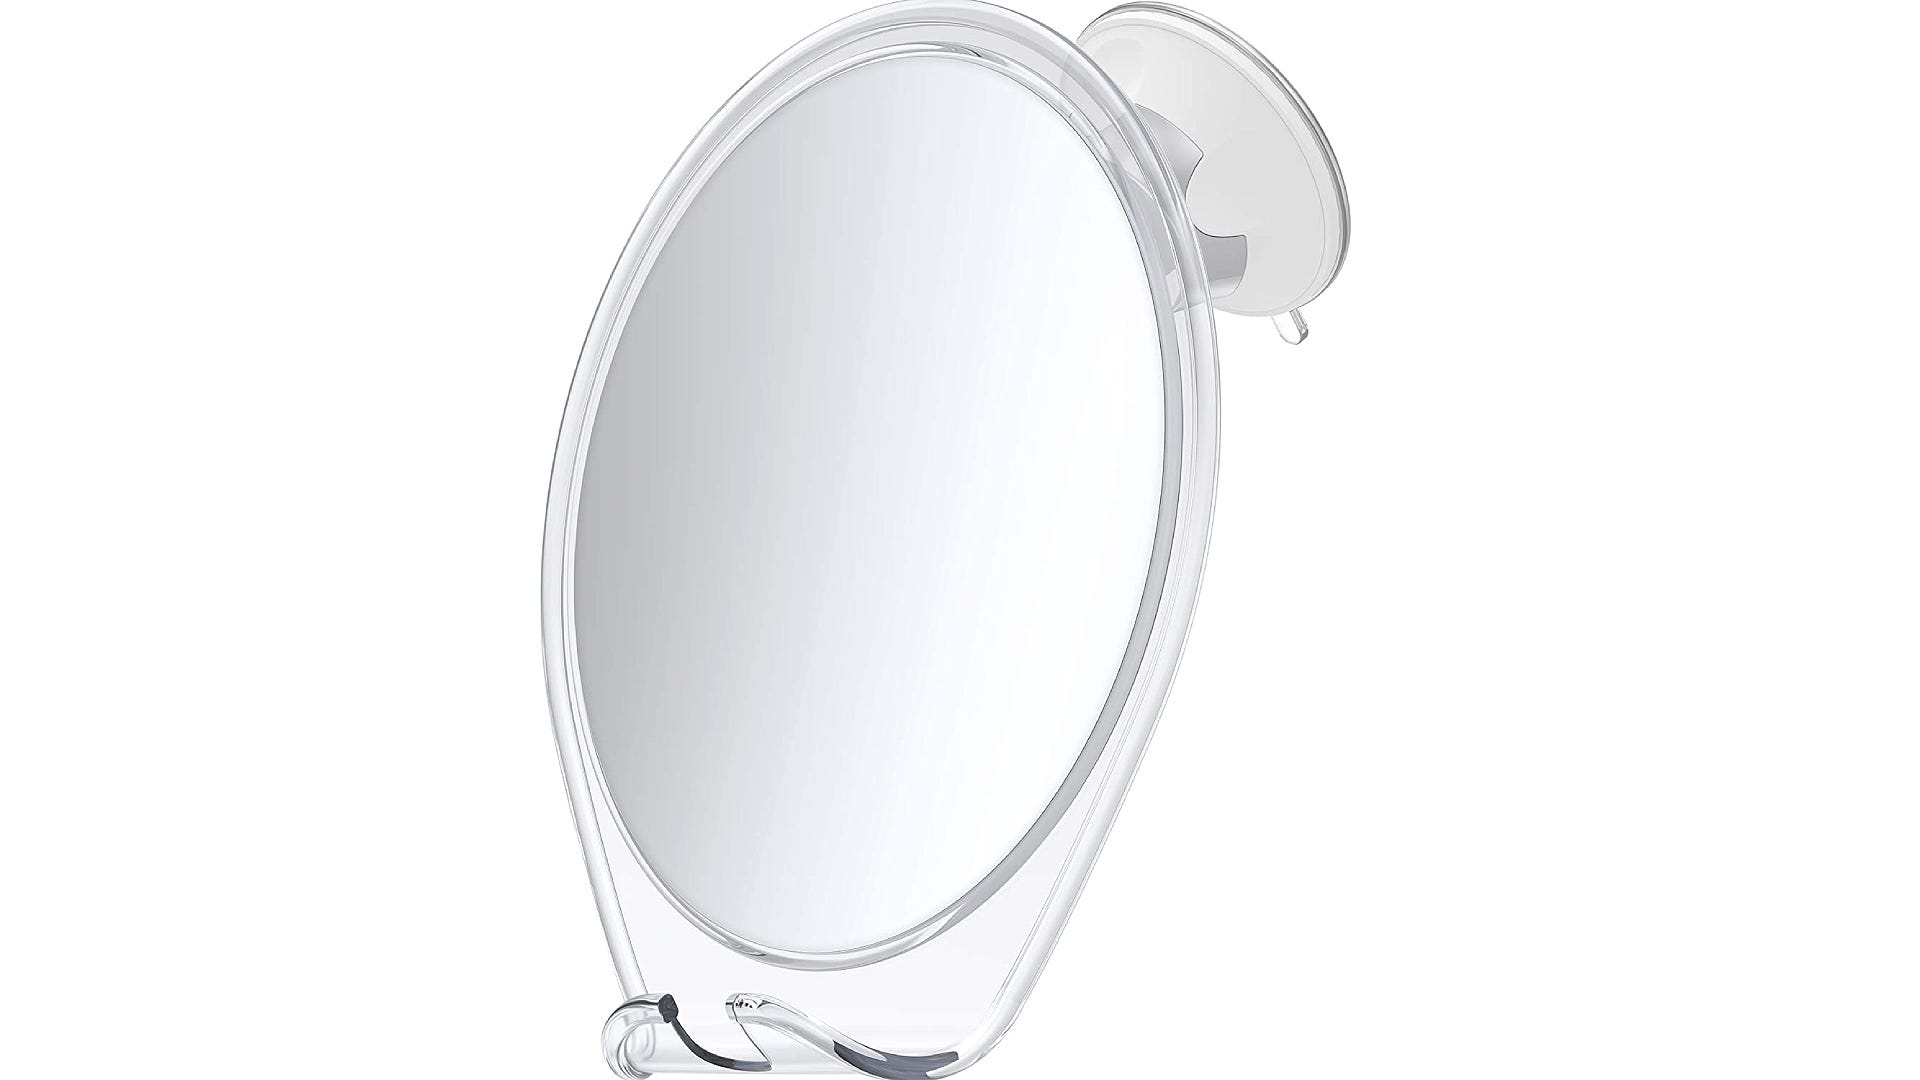 A suction hanging shower mirror with razor holder and clear frame.